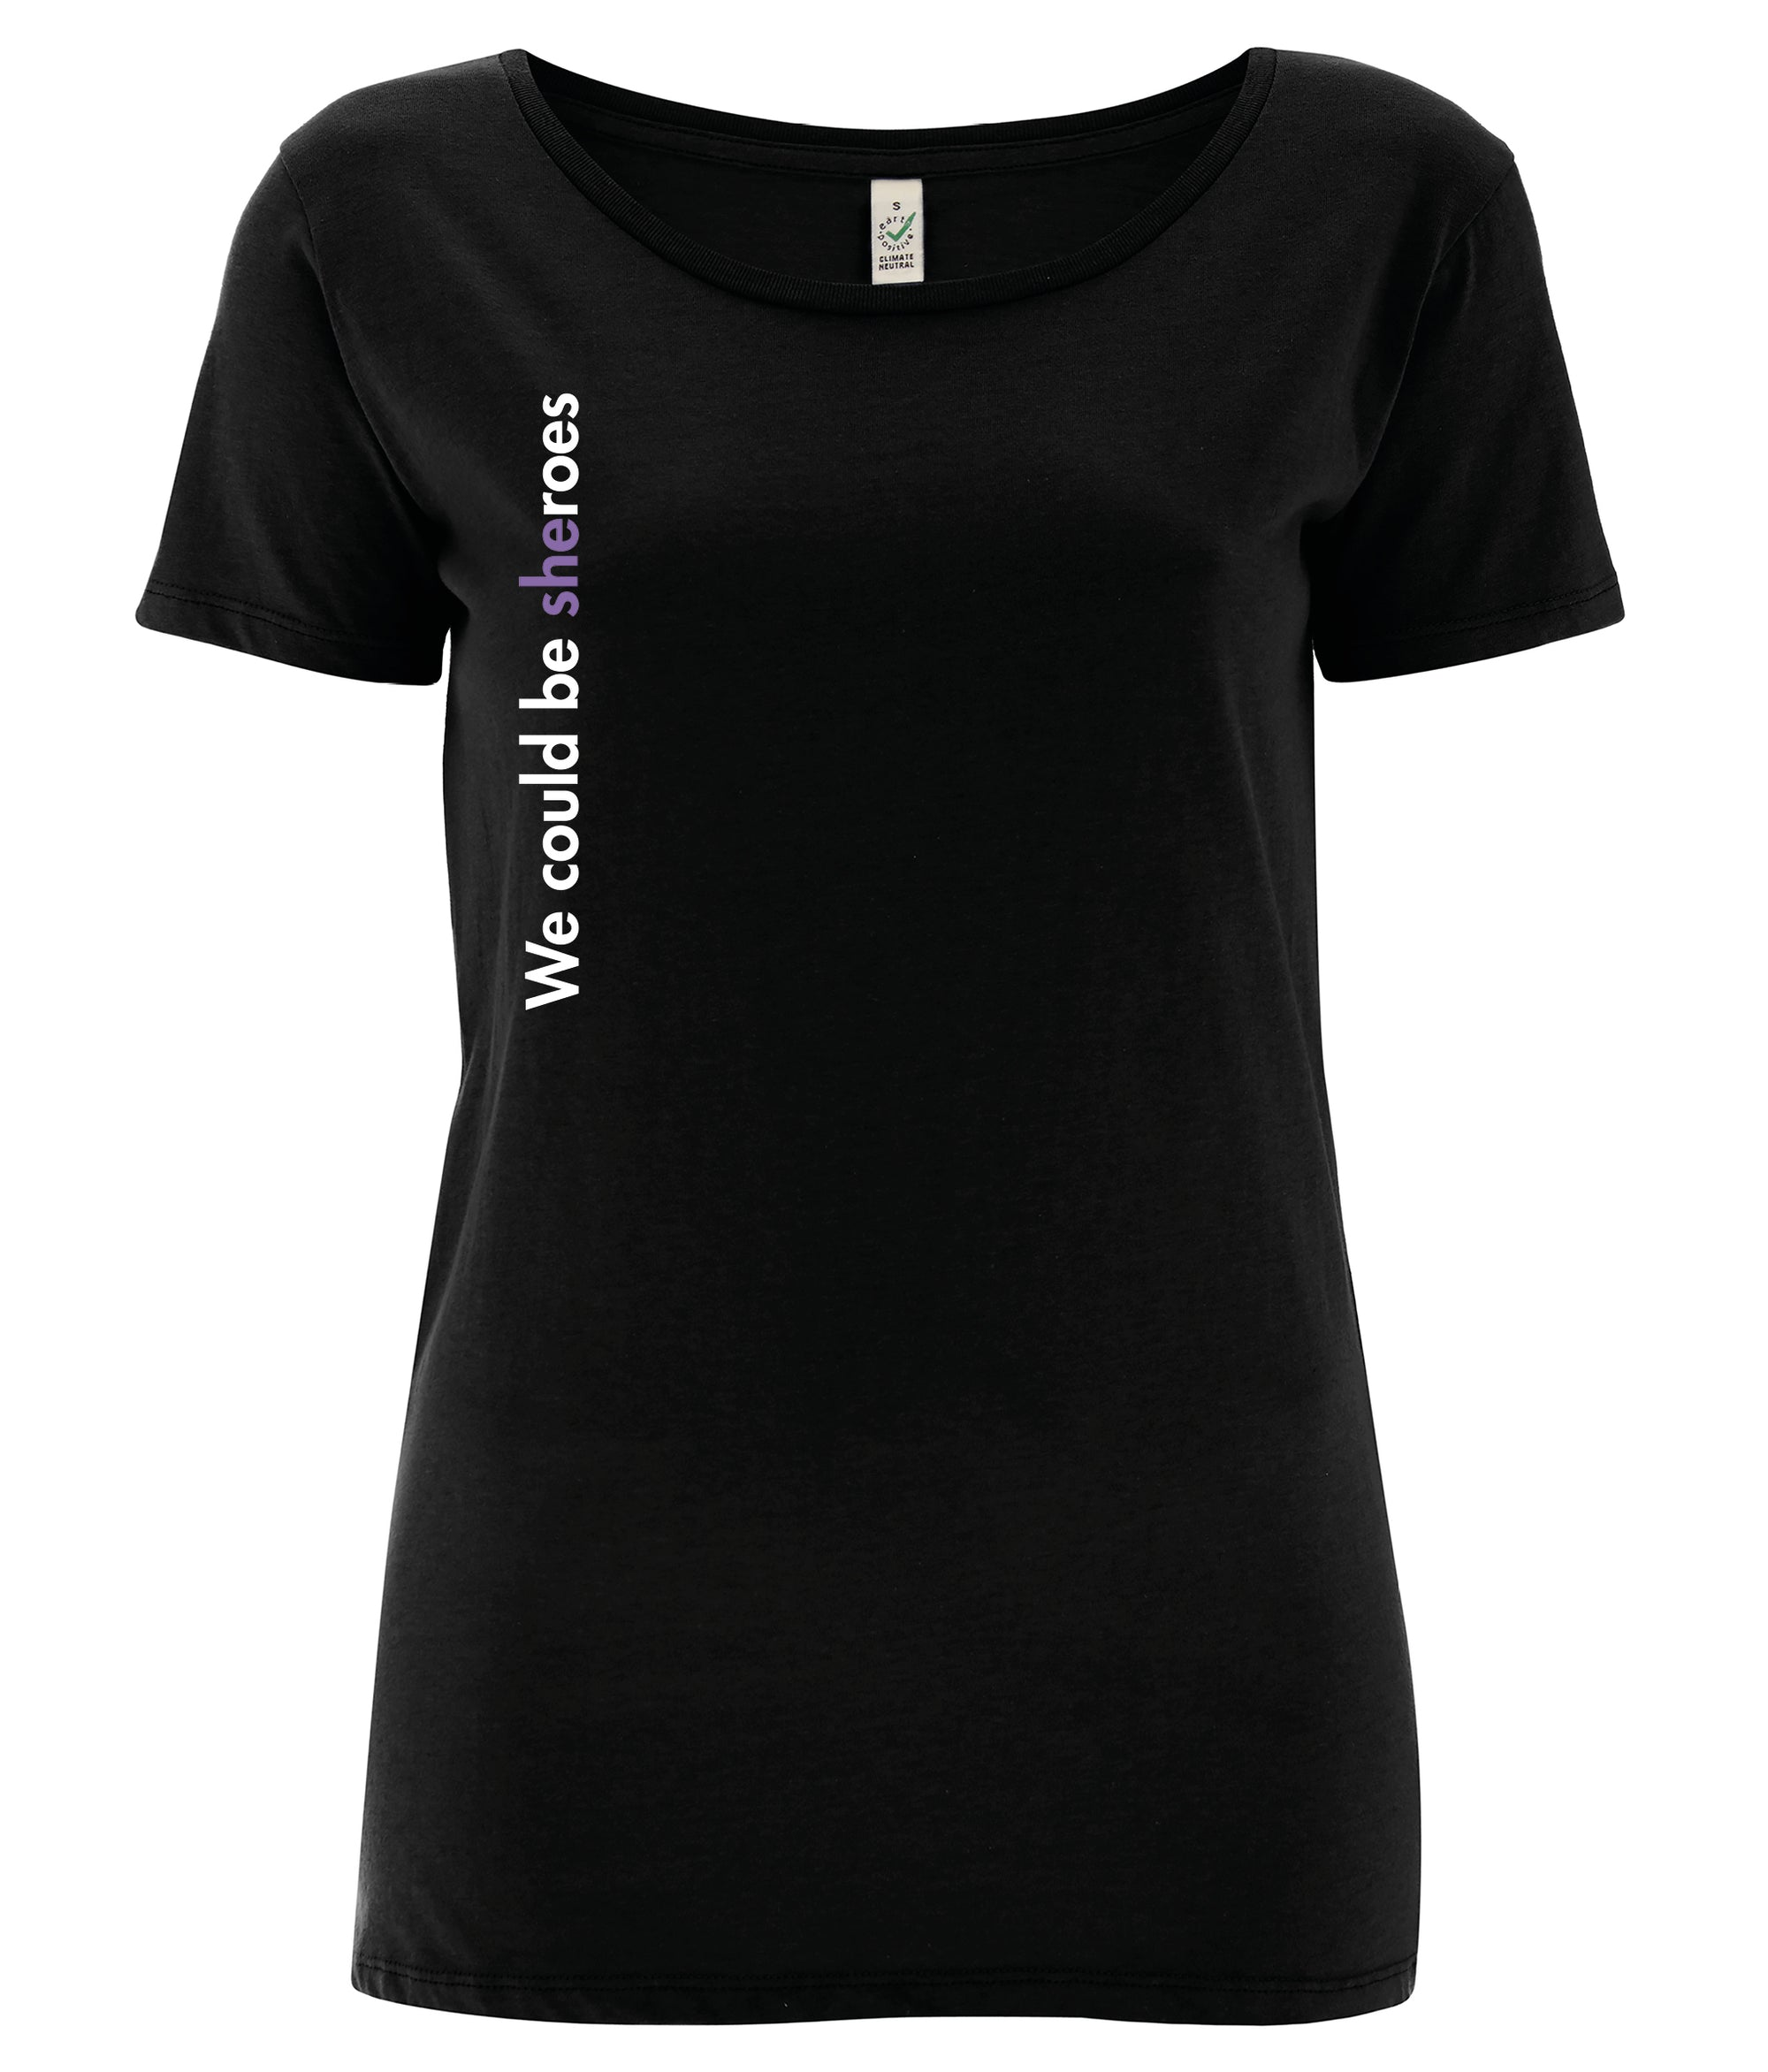 We Could Be Sheroes Open Neck Organic Feminist T Shirt Black